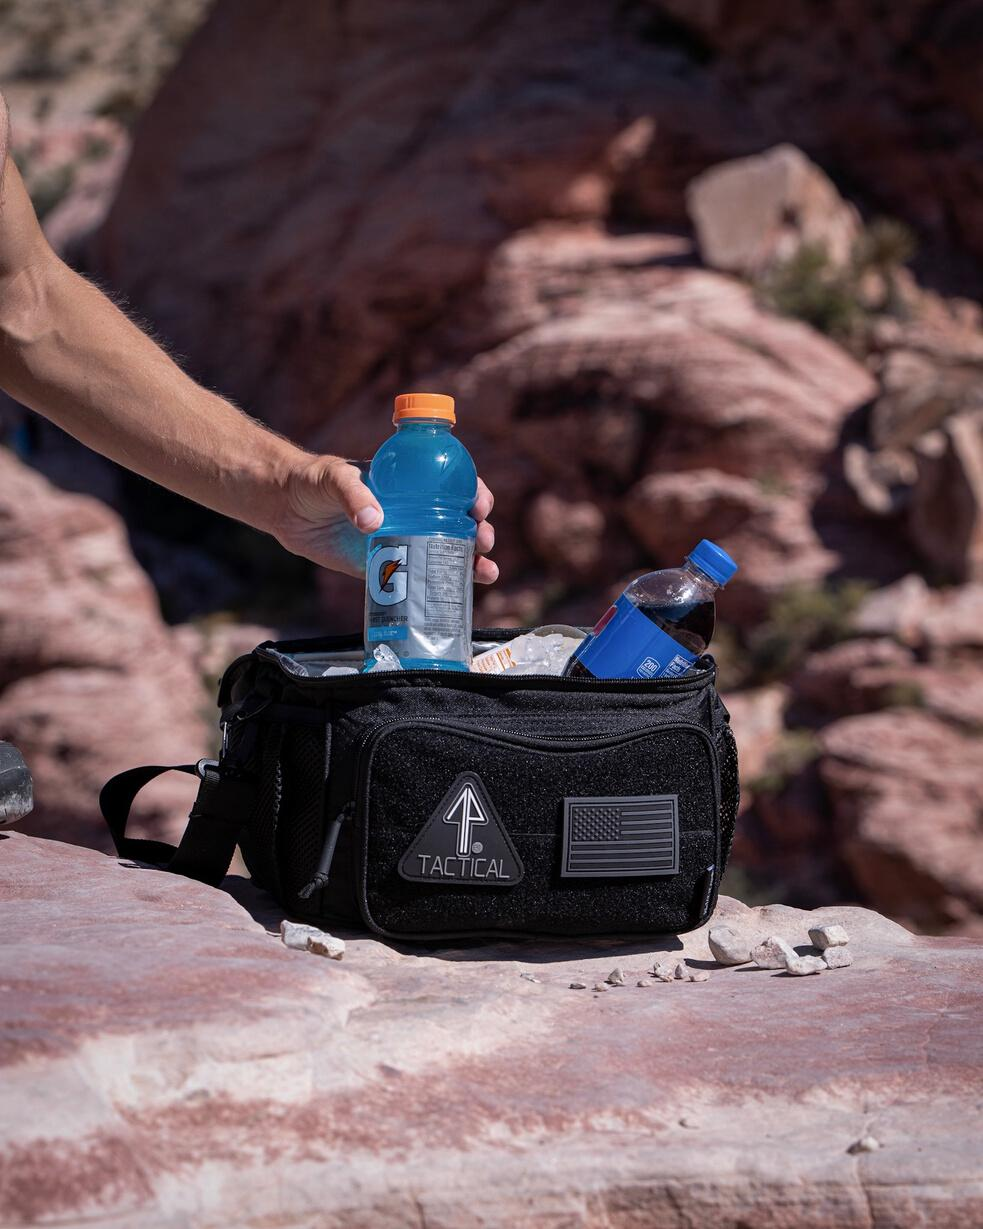 The 14er Tactical Lunch Cooler is used to carry food while camping.